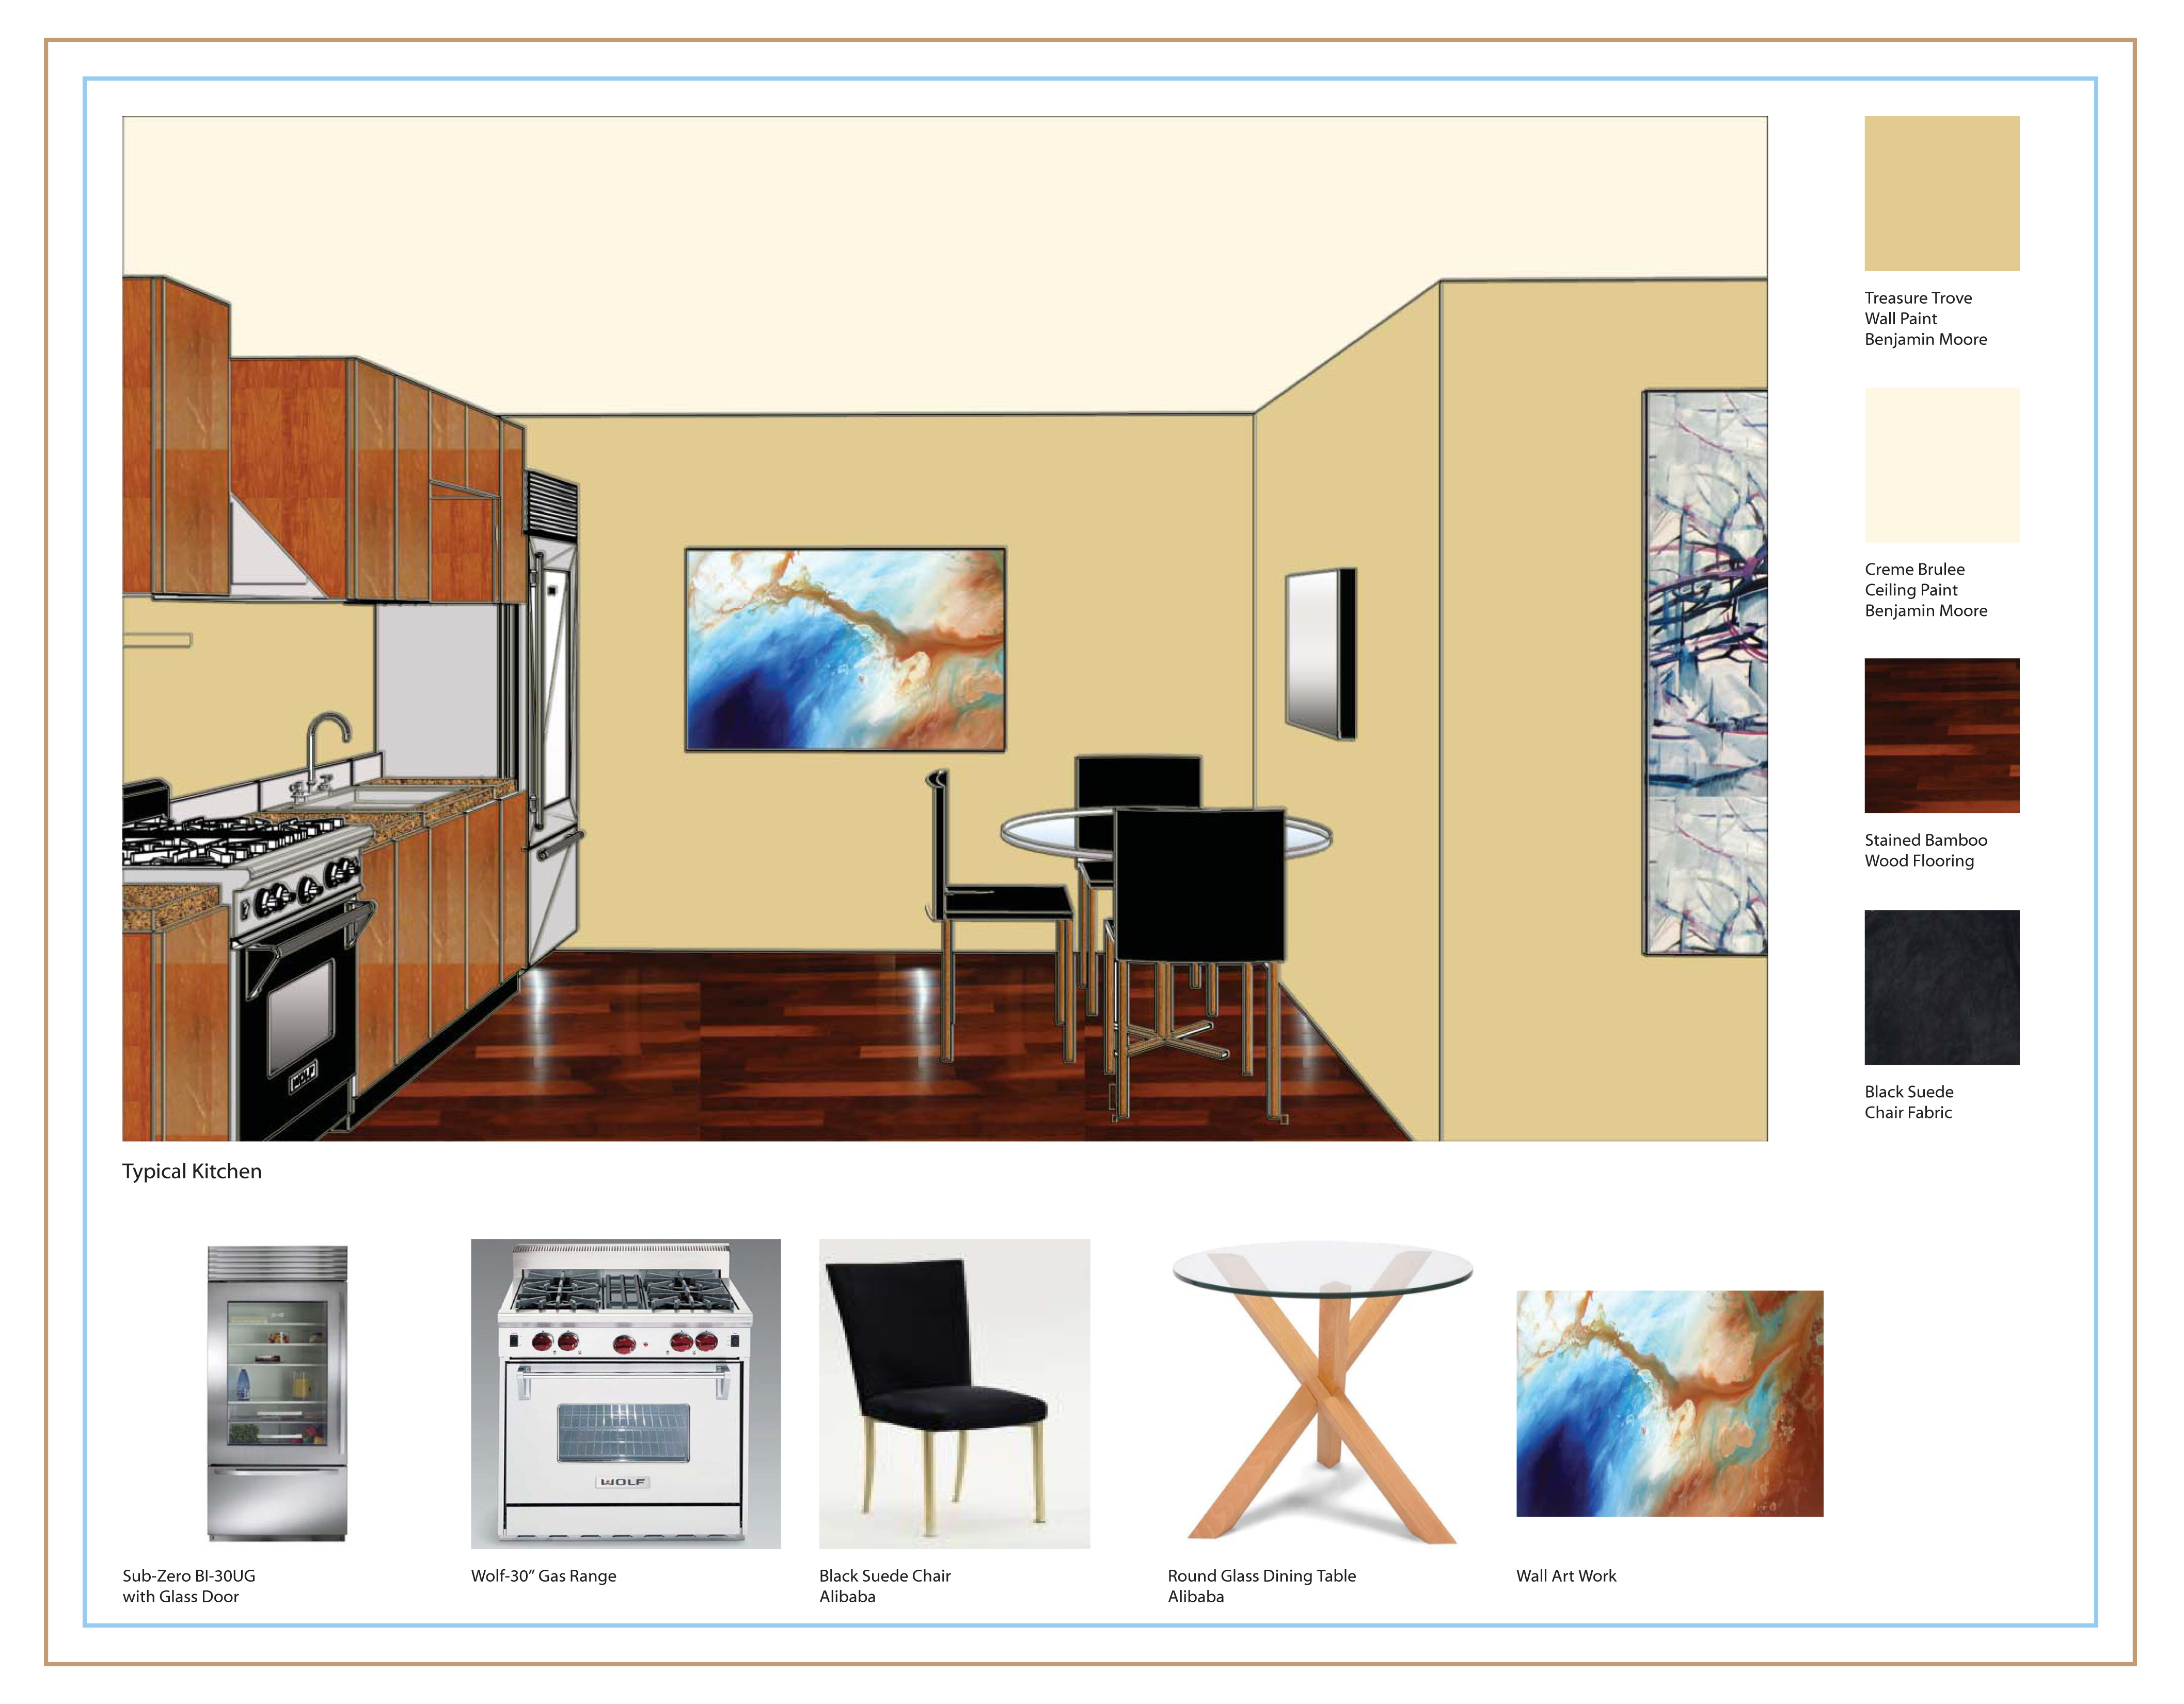 qview full size - Benjamin Moore Creme Brulee